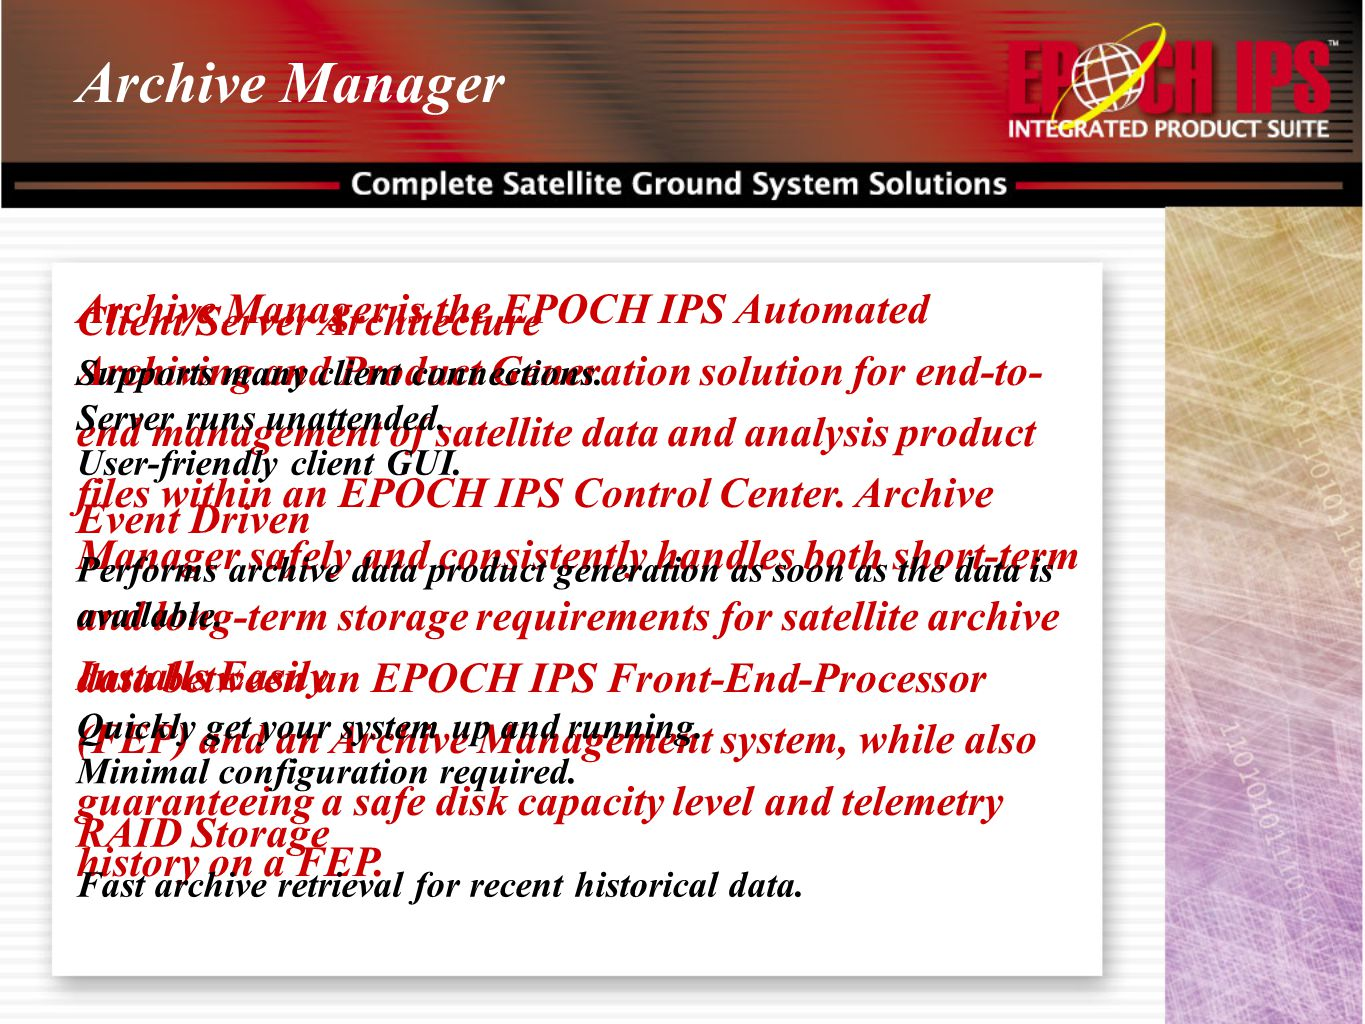 Archive Manager Archive Manager is the EPOCH IPS Automated Archiving and Product Generation solution for end-to- end management of satellite data and